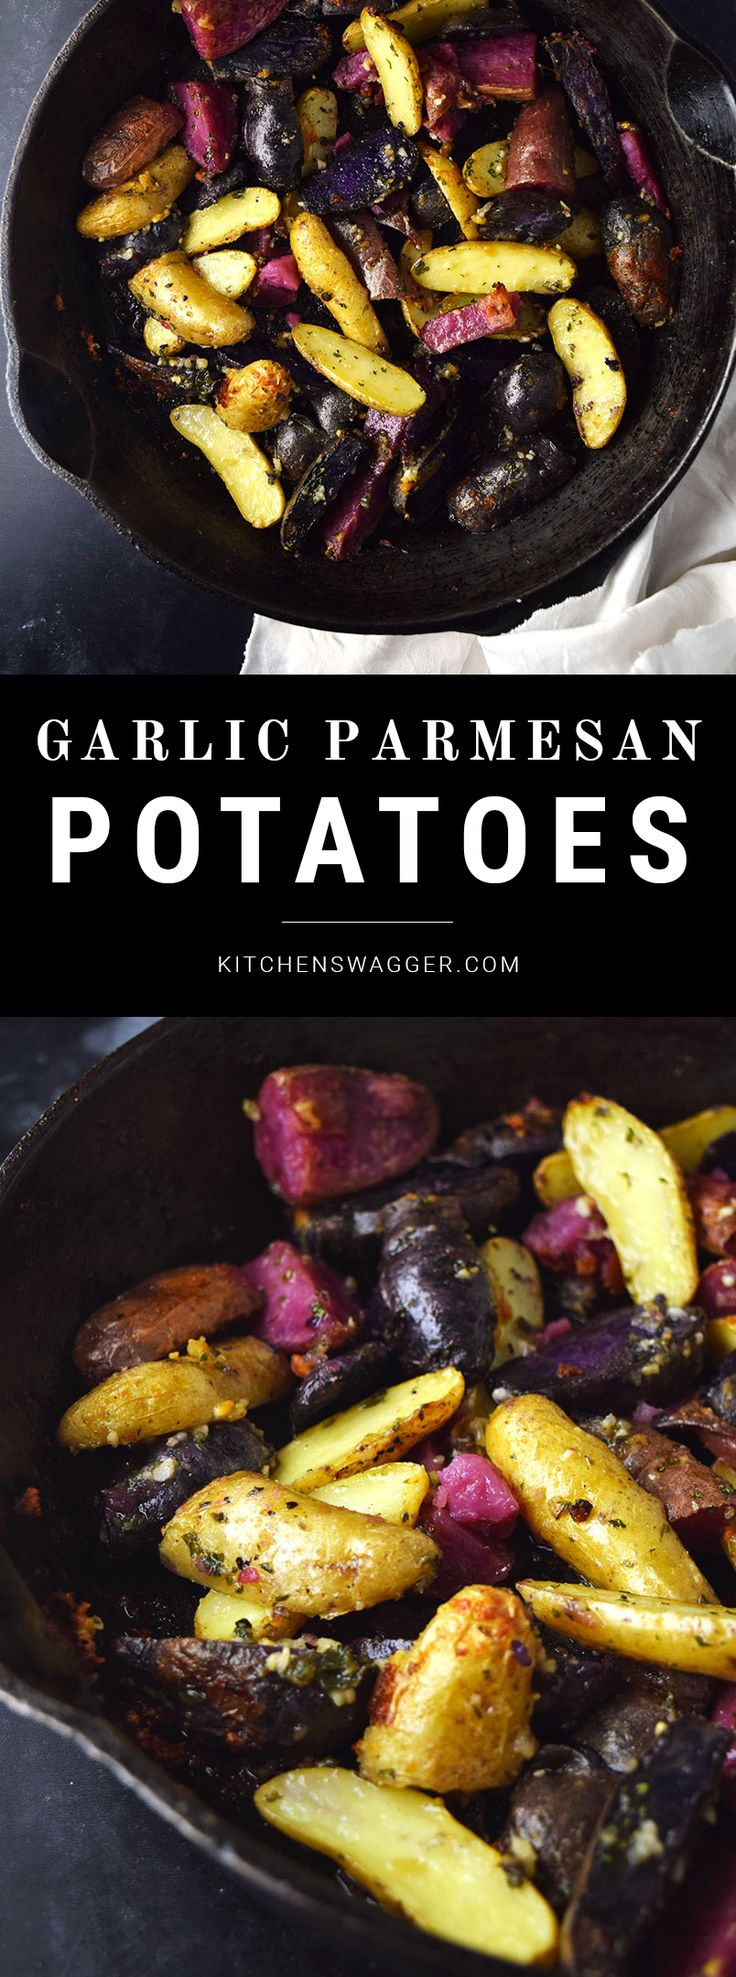 Garlic and parmesan fingerling potatoes are oven-fried in olive oil and butter for a golden, crispy outside and tender inside.